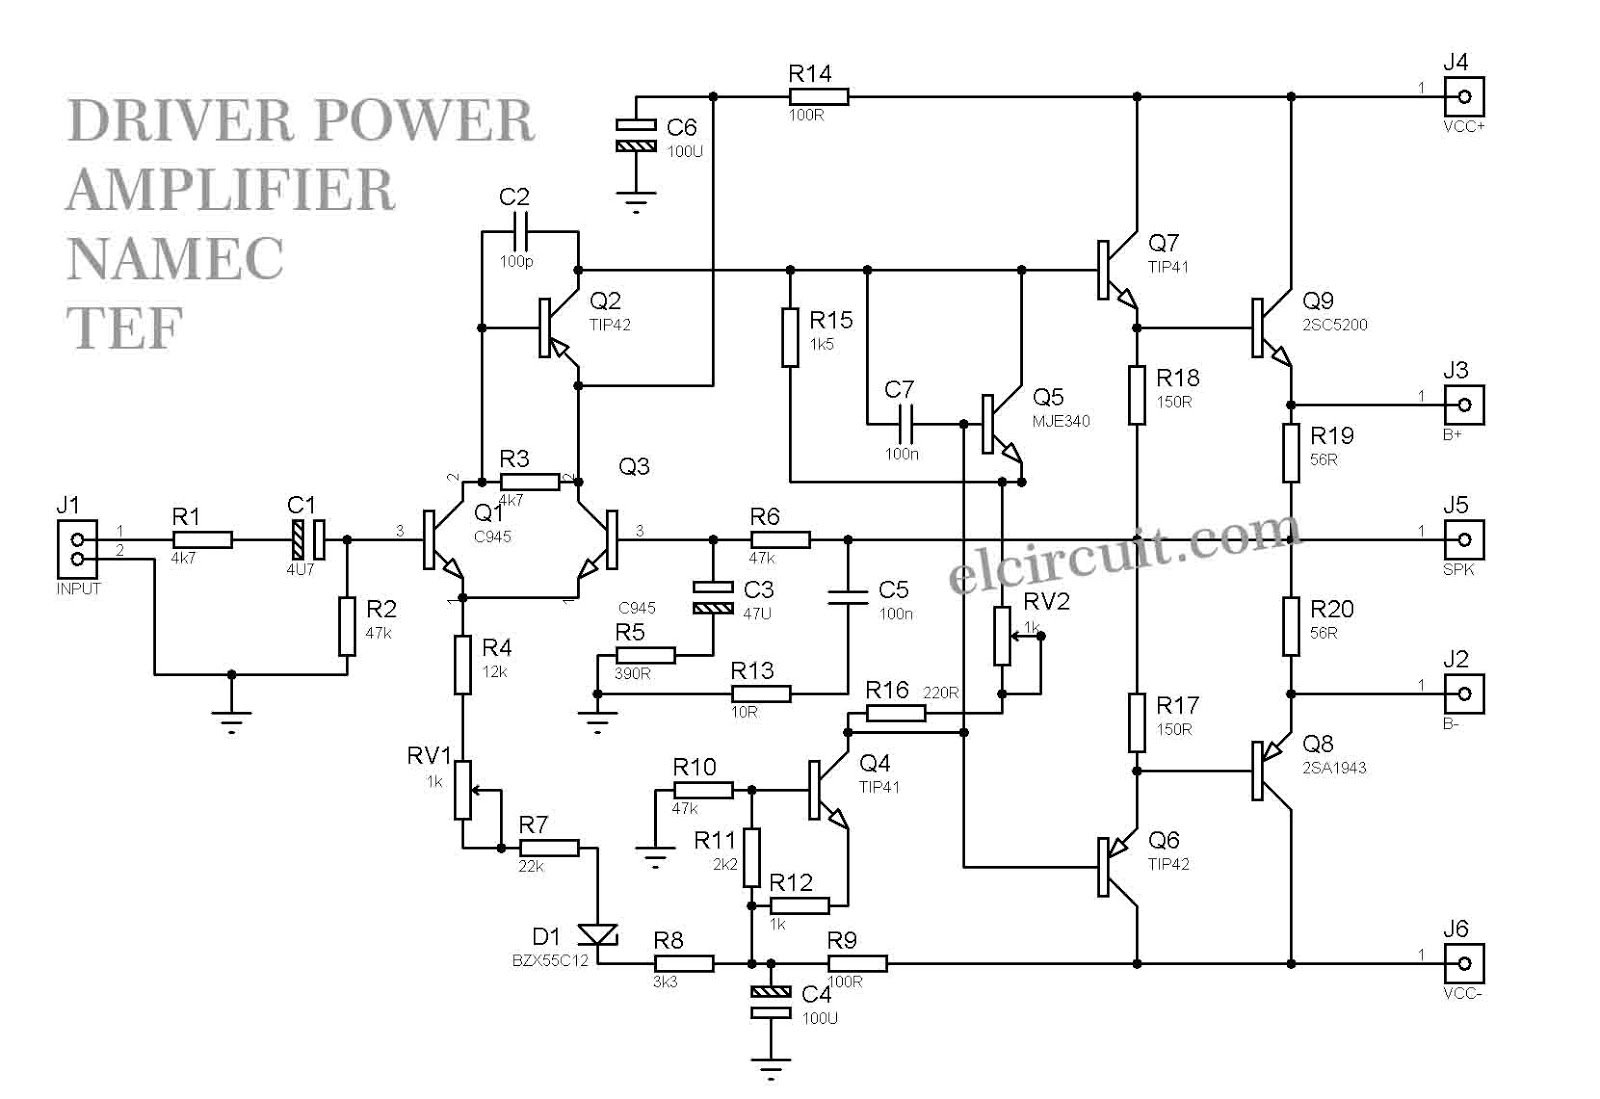 small resolution of 1000w driver power amplifier namec tef electronic circuit subwoofer amplifier circuit diagram 1000w